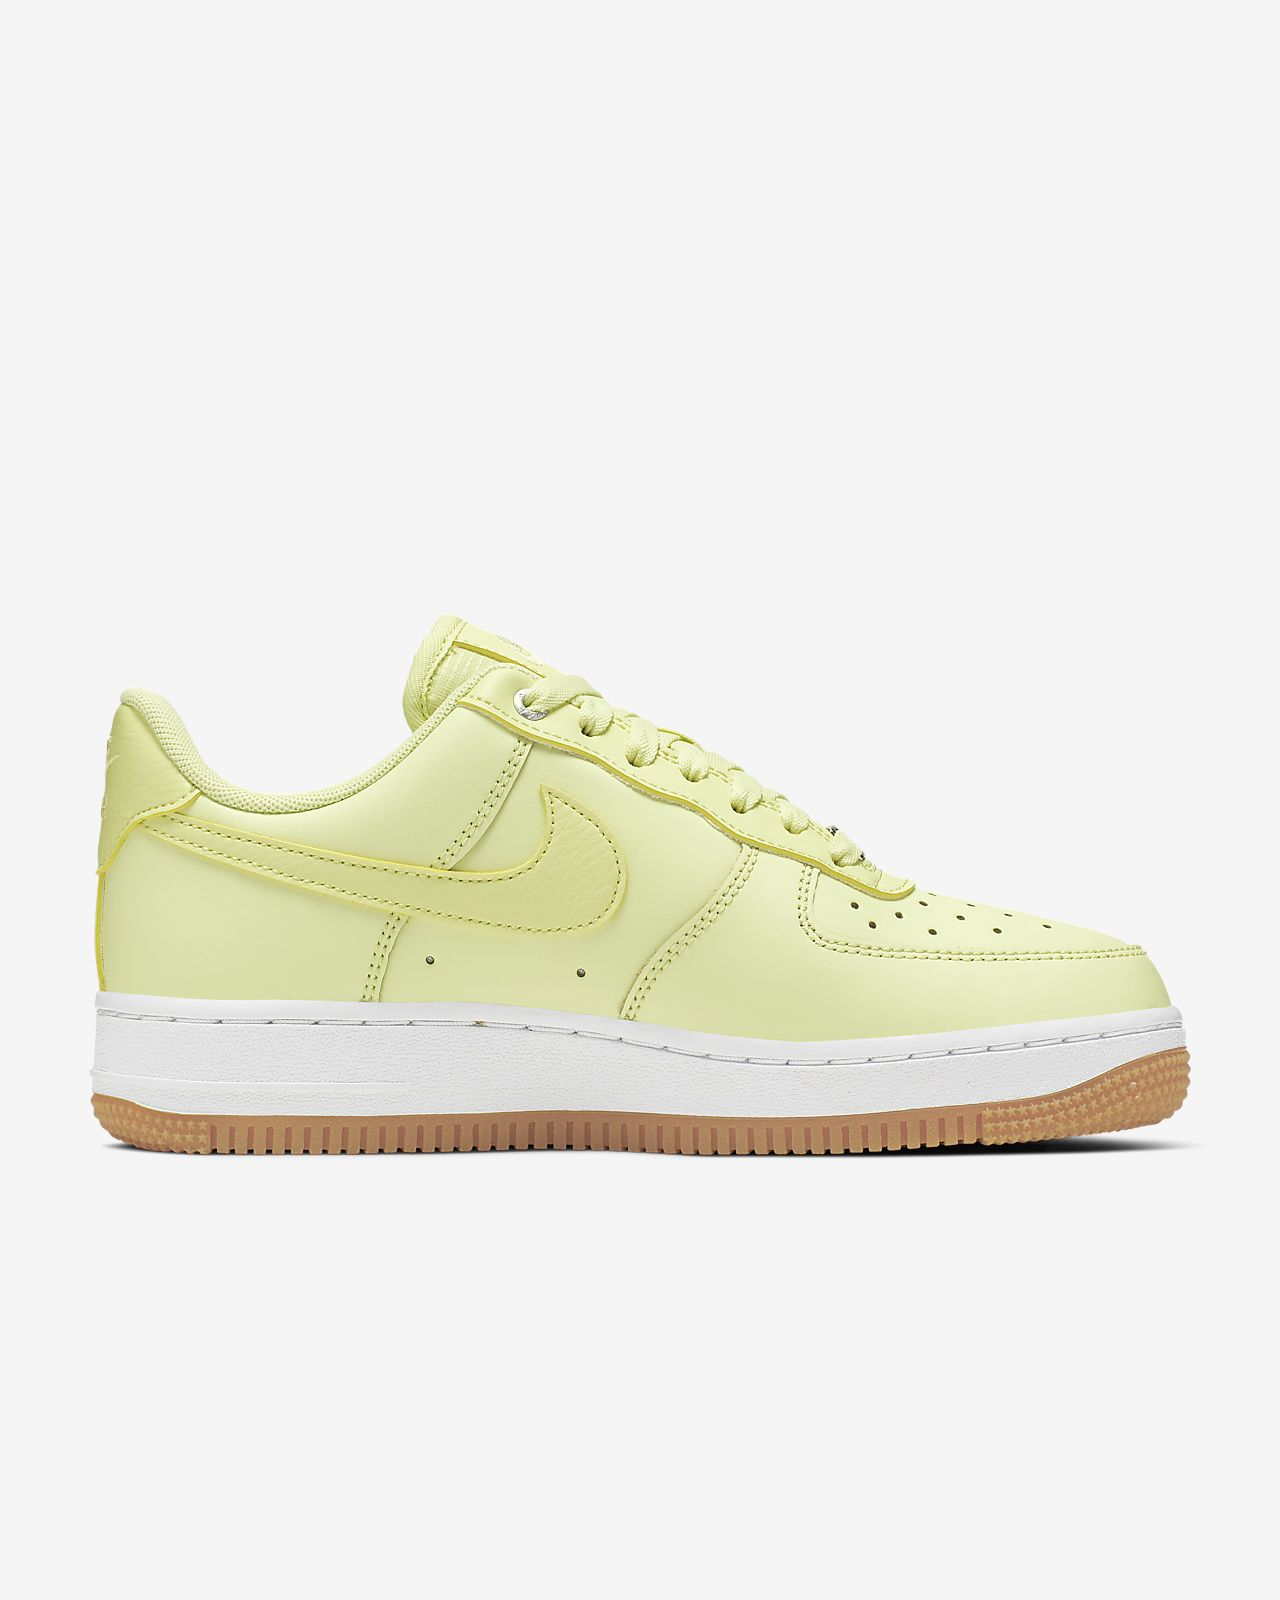 Nike Air Force 1 '07 Low Premium Women's Shoe